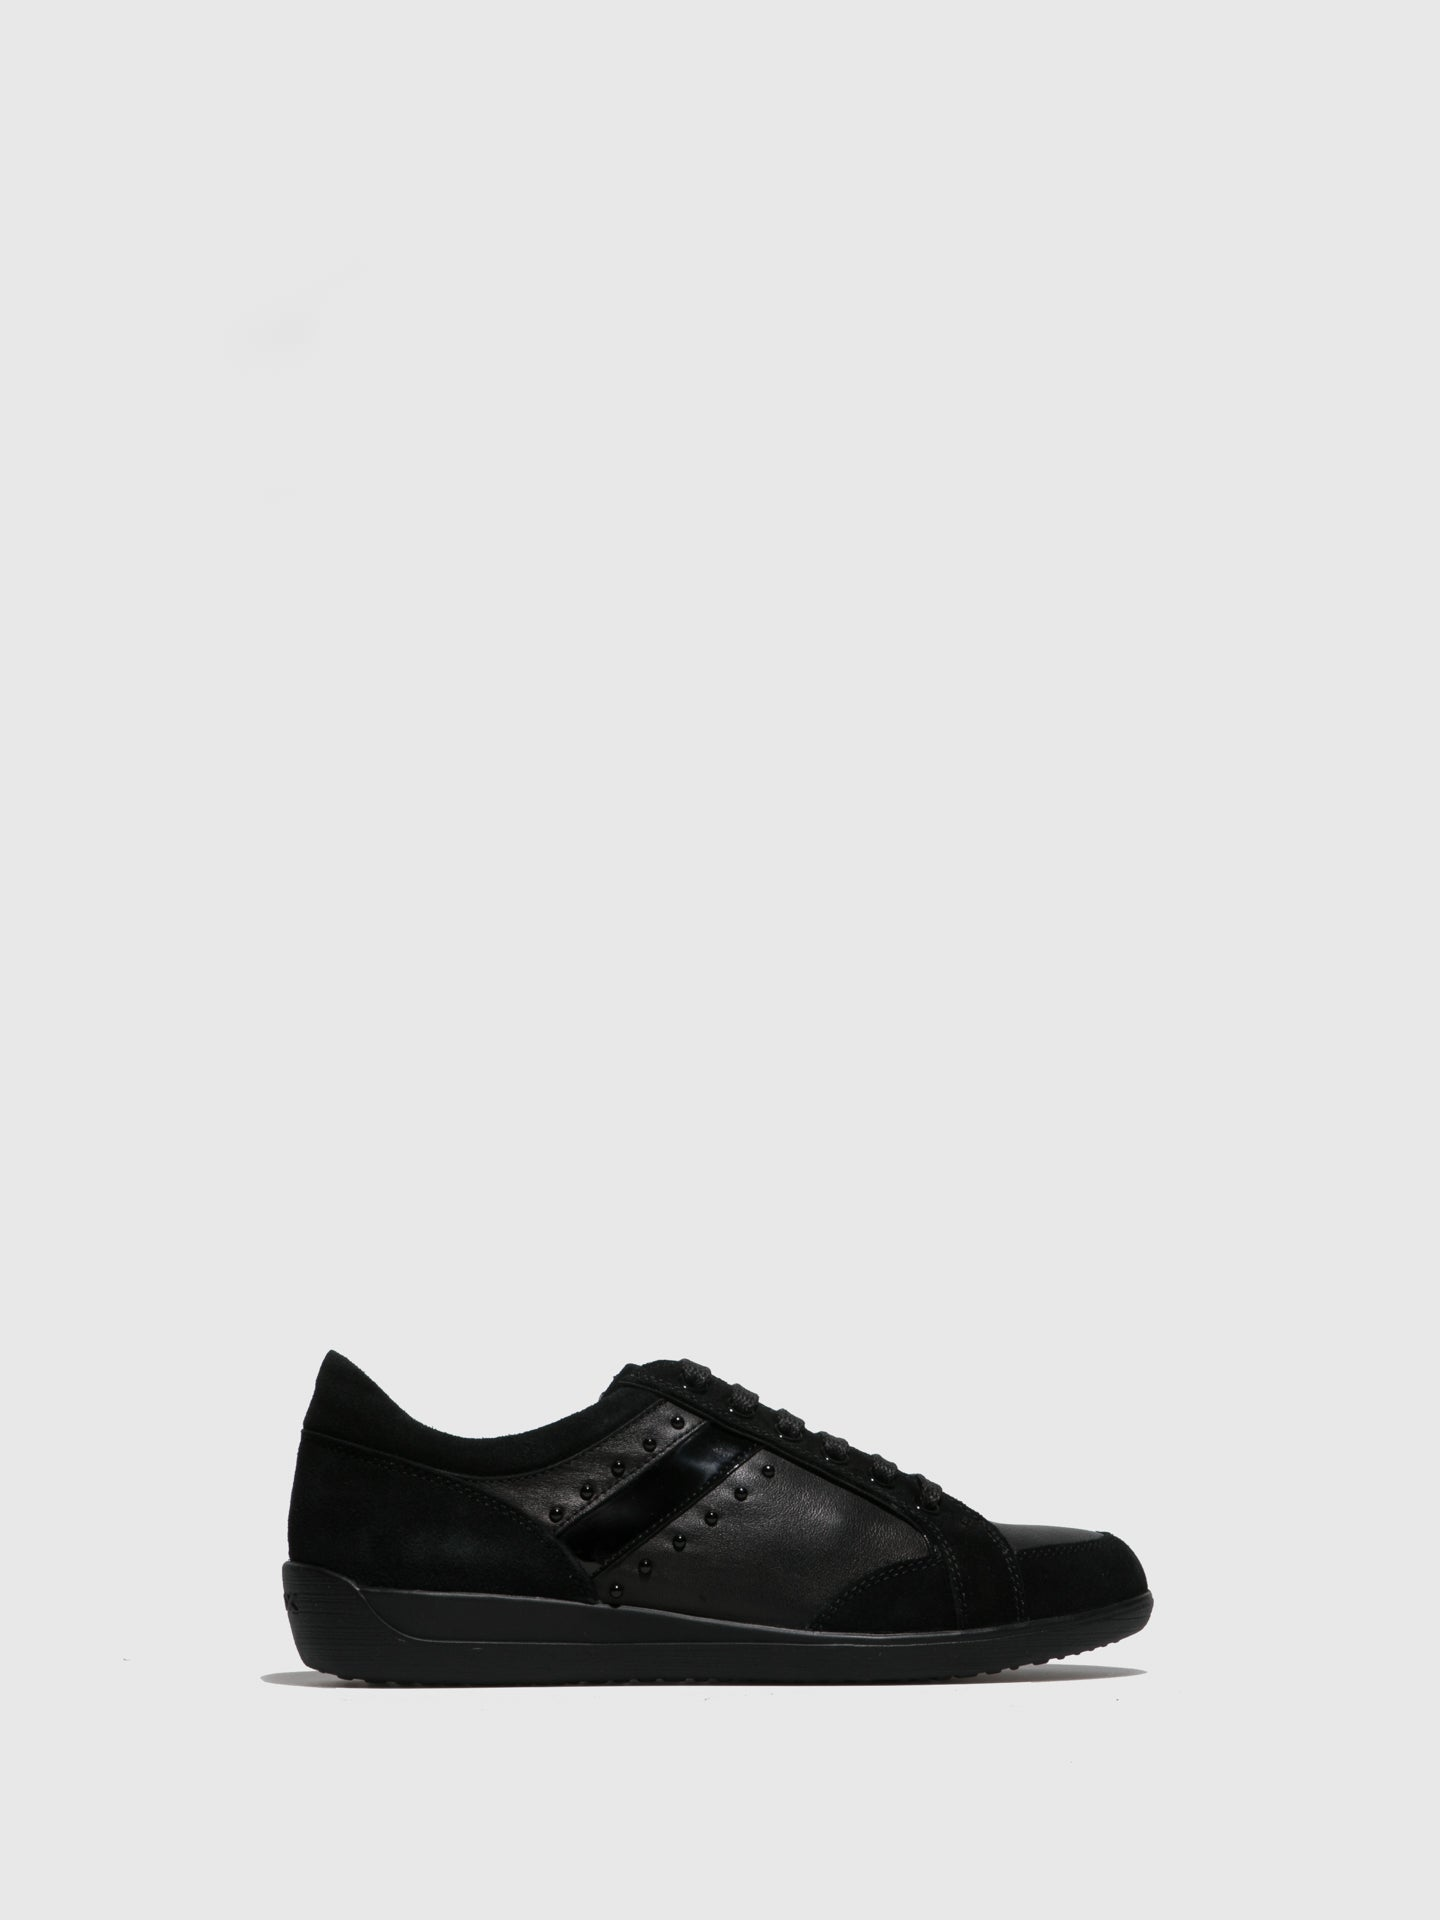 Geox Black Lace-up Shoes